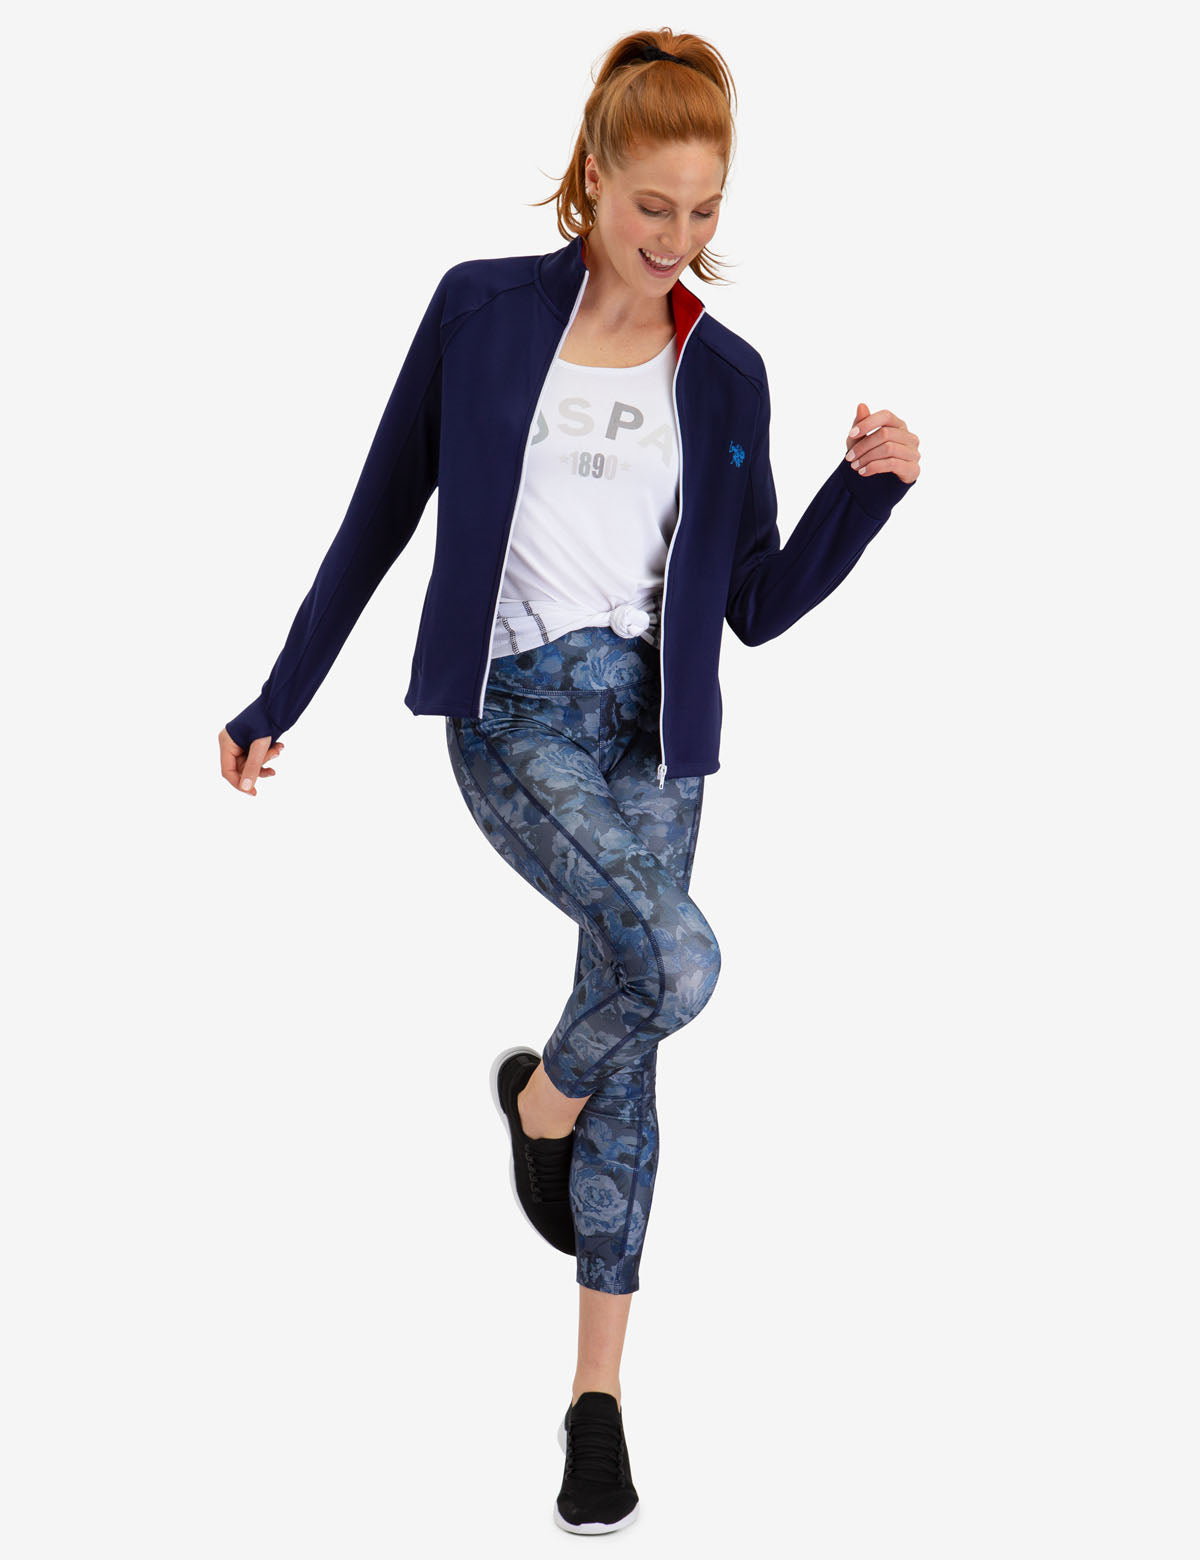 ACTIVE FLORAL LEGGINGS - U.S. Polo Assn.